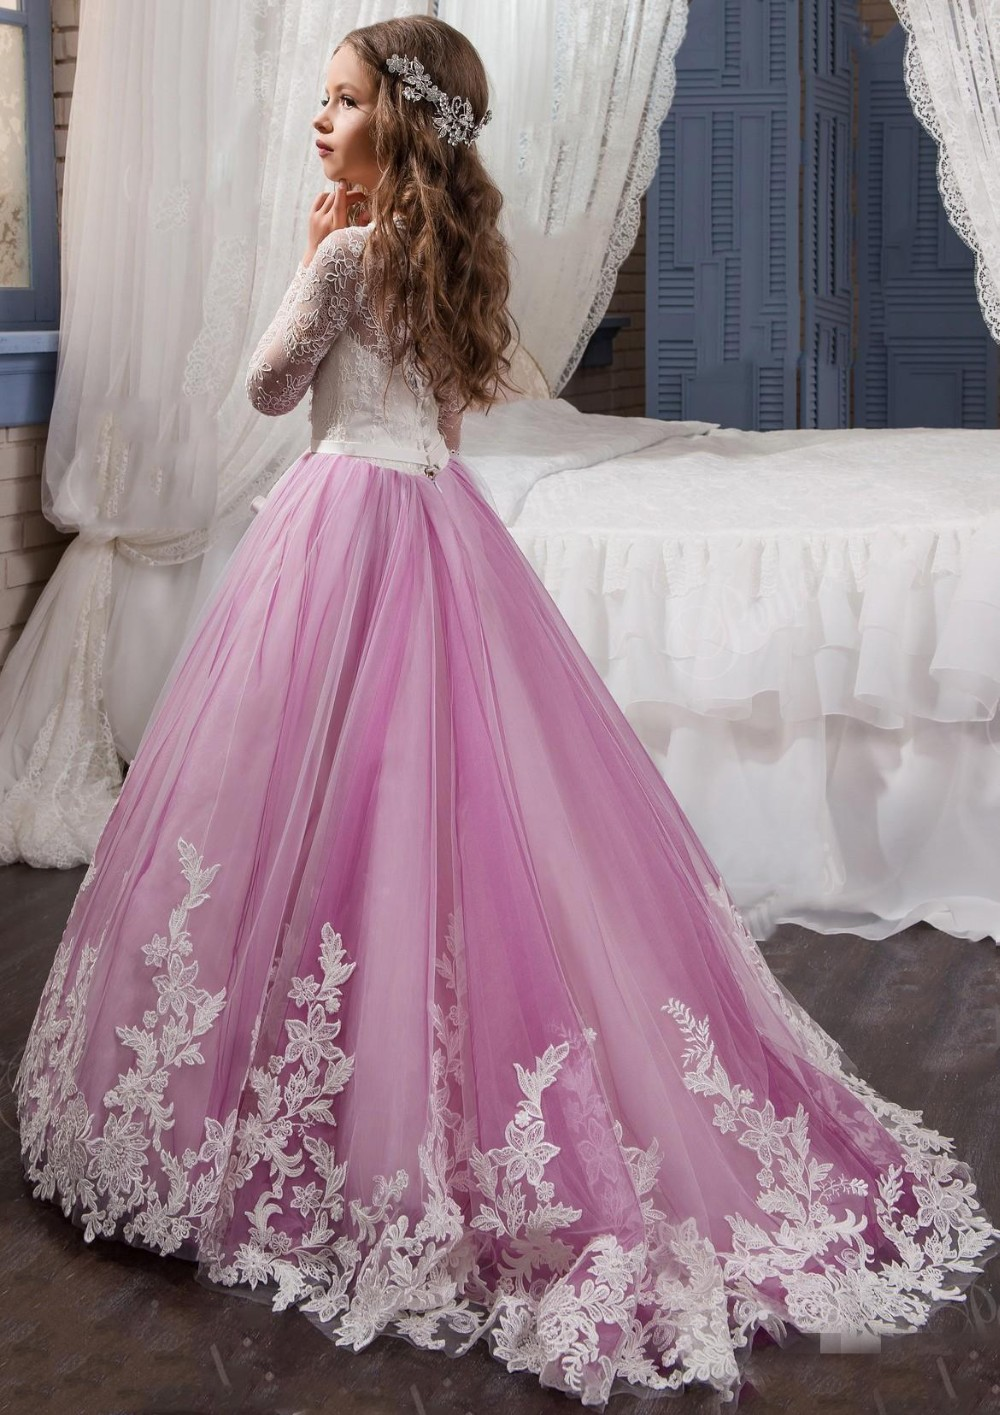 2017-Princess-Long-Sleeves-Lace-Flower-Girl-Dresses-2017-Vestidos-Puffy-Pink-Kids-Evening-Ball-Gown (1)